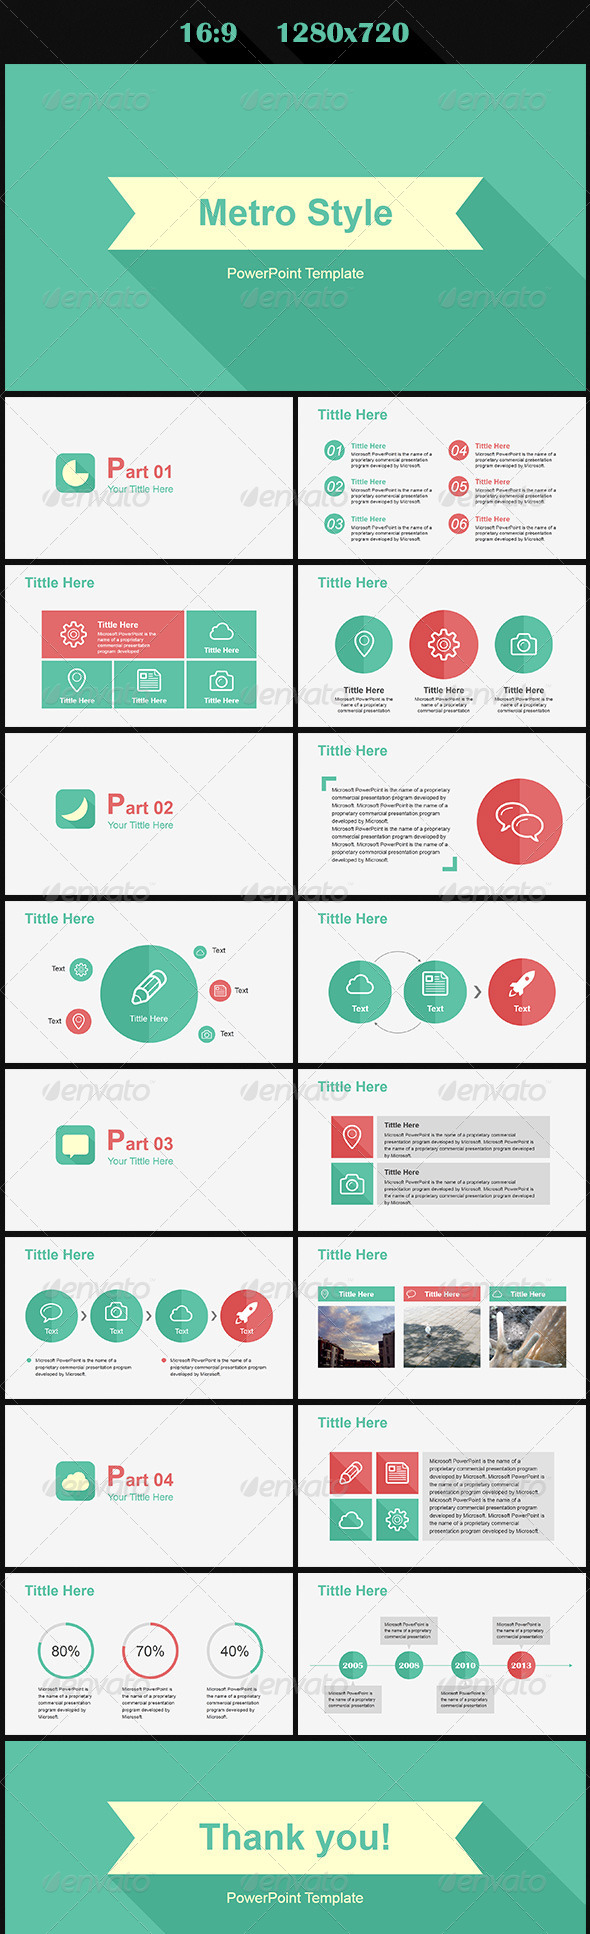 Metro style font arial metro style and change colour metro style graphicriver its a modern and fashion powerpoint template with metro style all slides are fully editable easy to change colors text toneelgroepblik Image collections